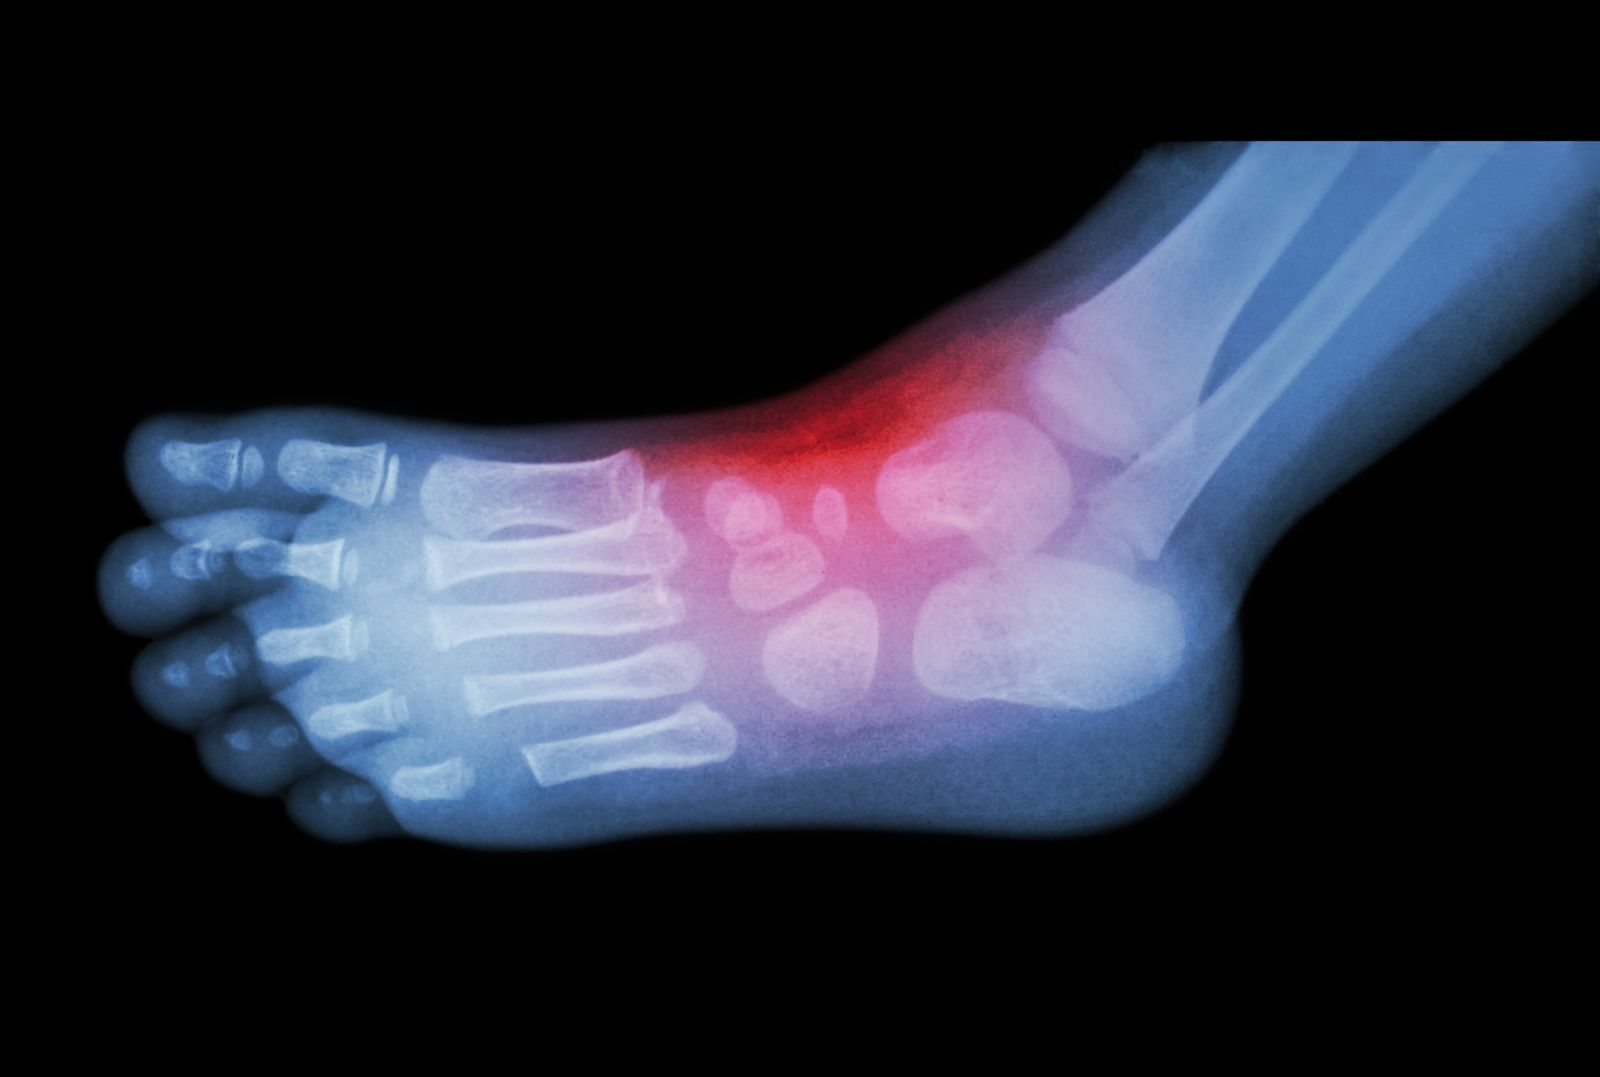 X-ray of a broken metatarsal bone